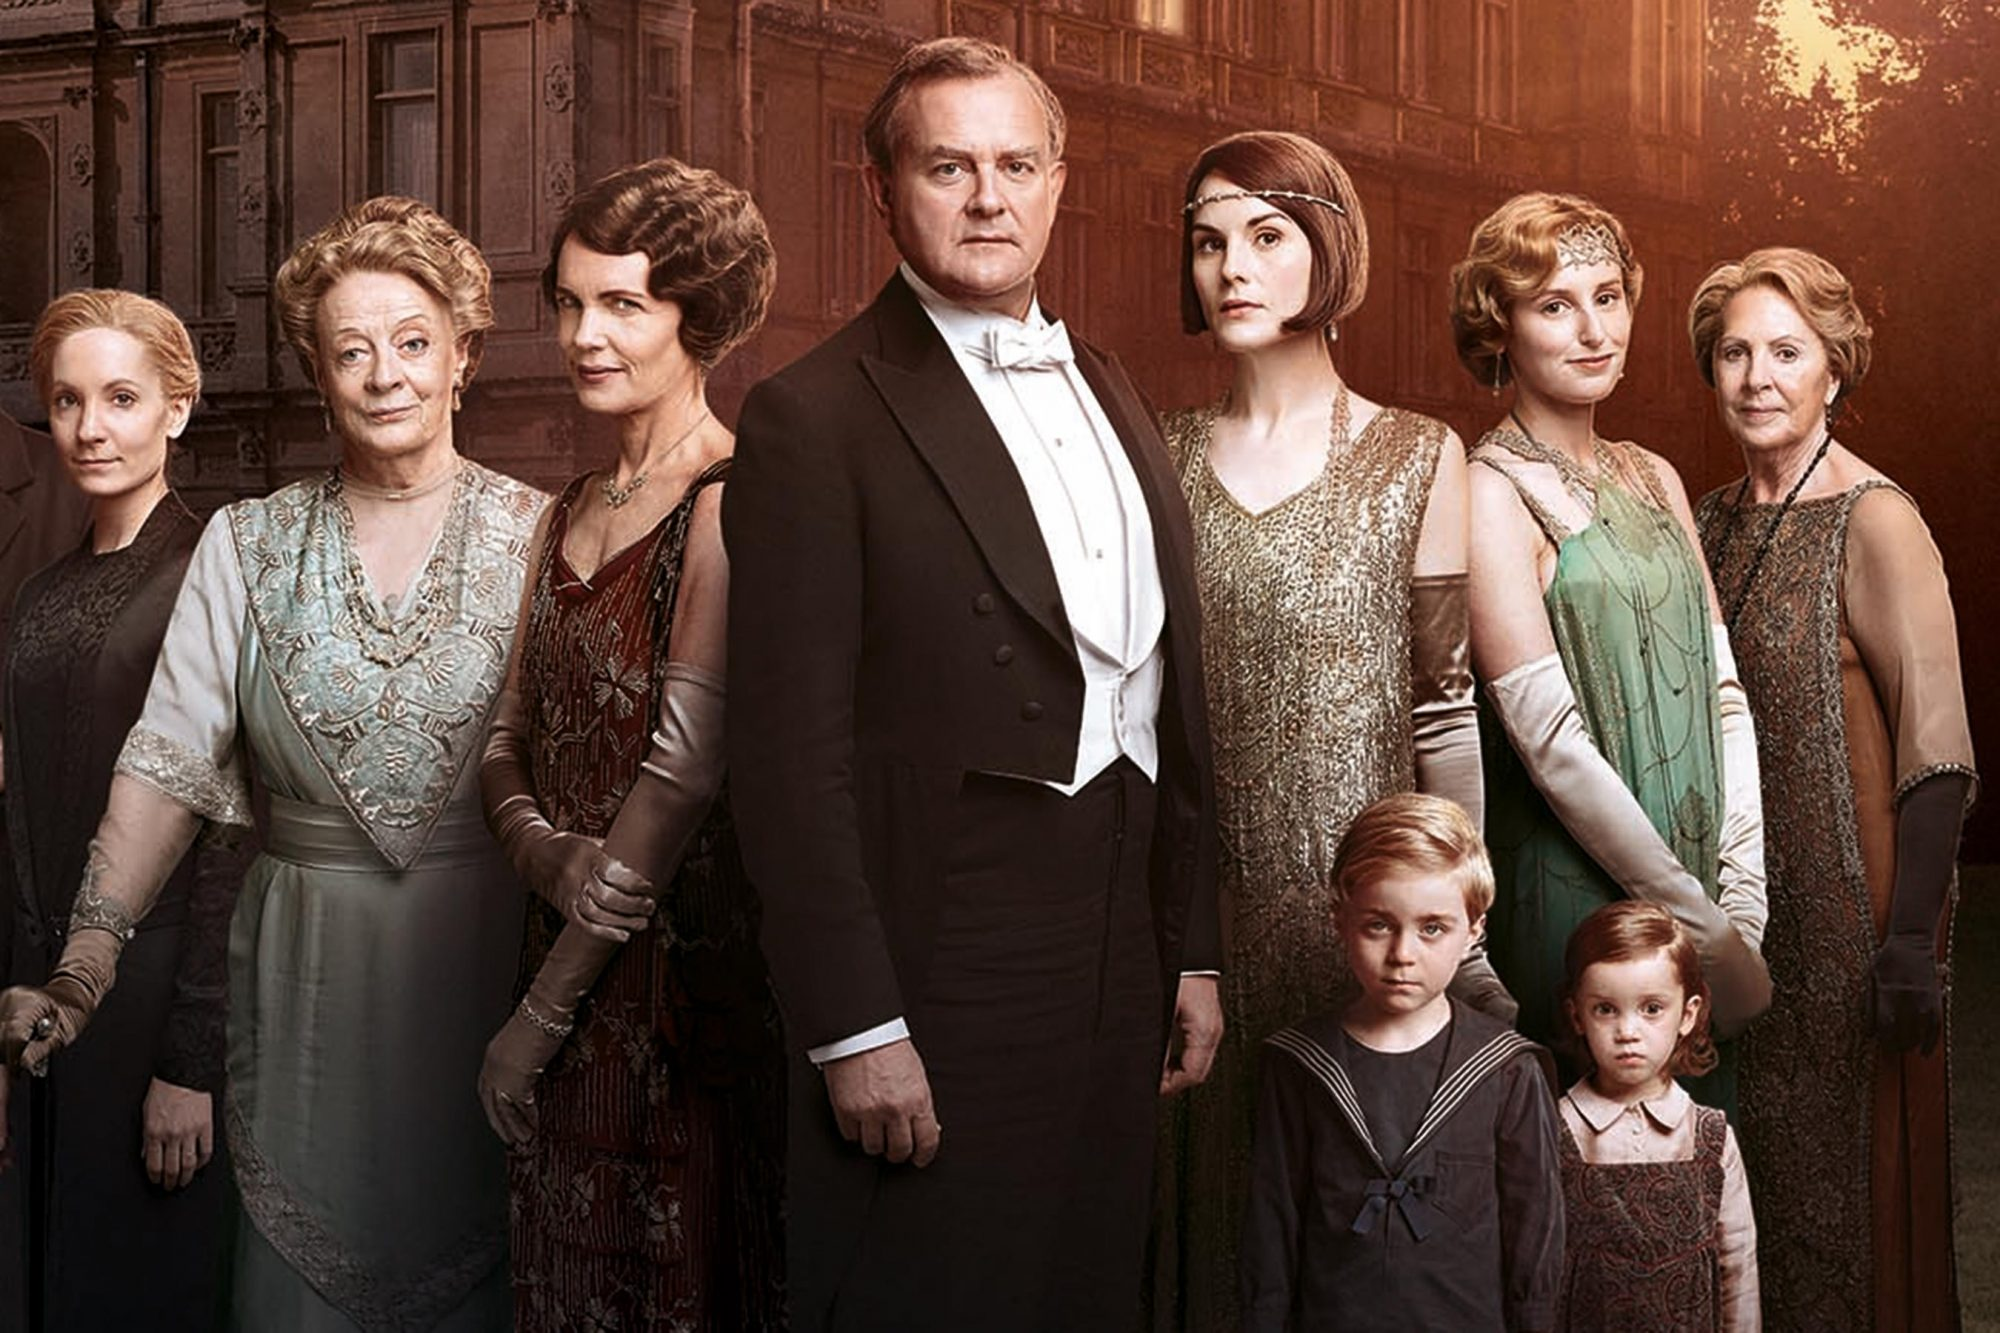 All of the photos from the 'Downton Abbey' movie so far